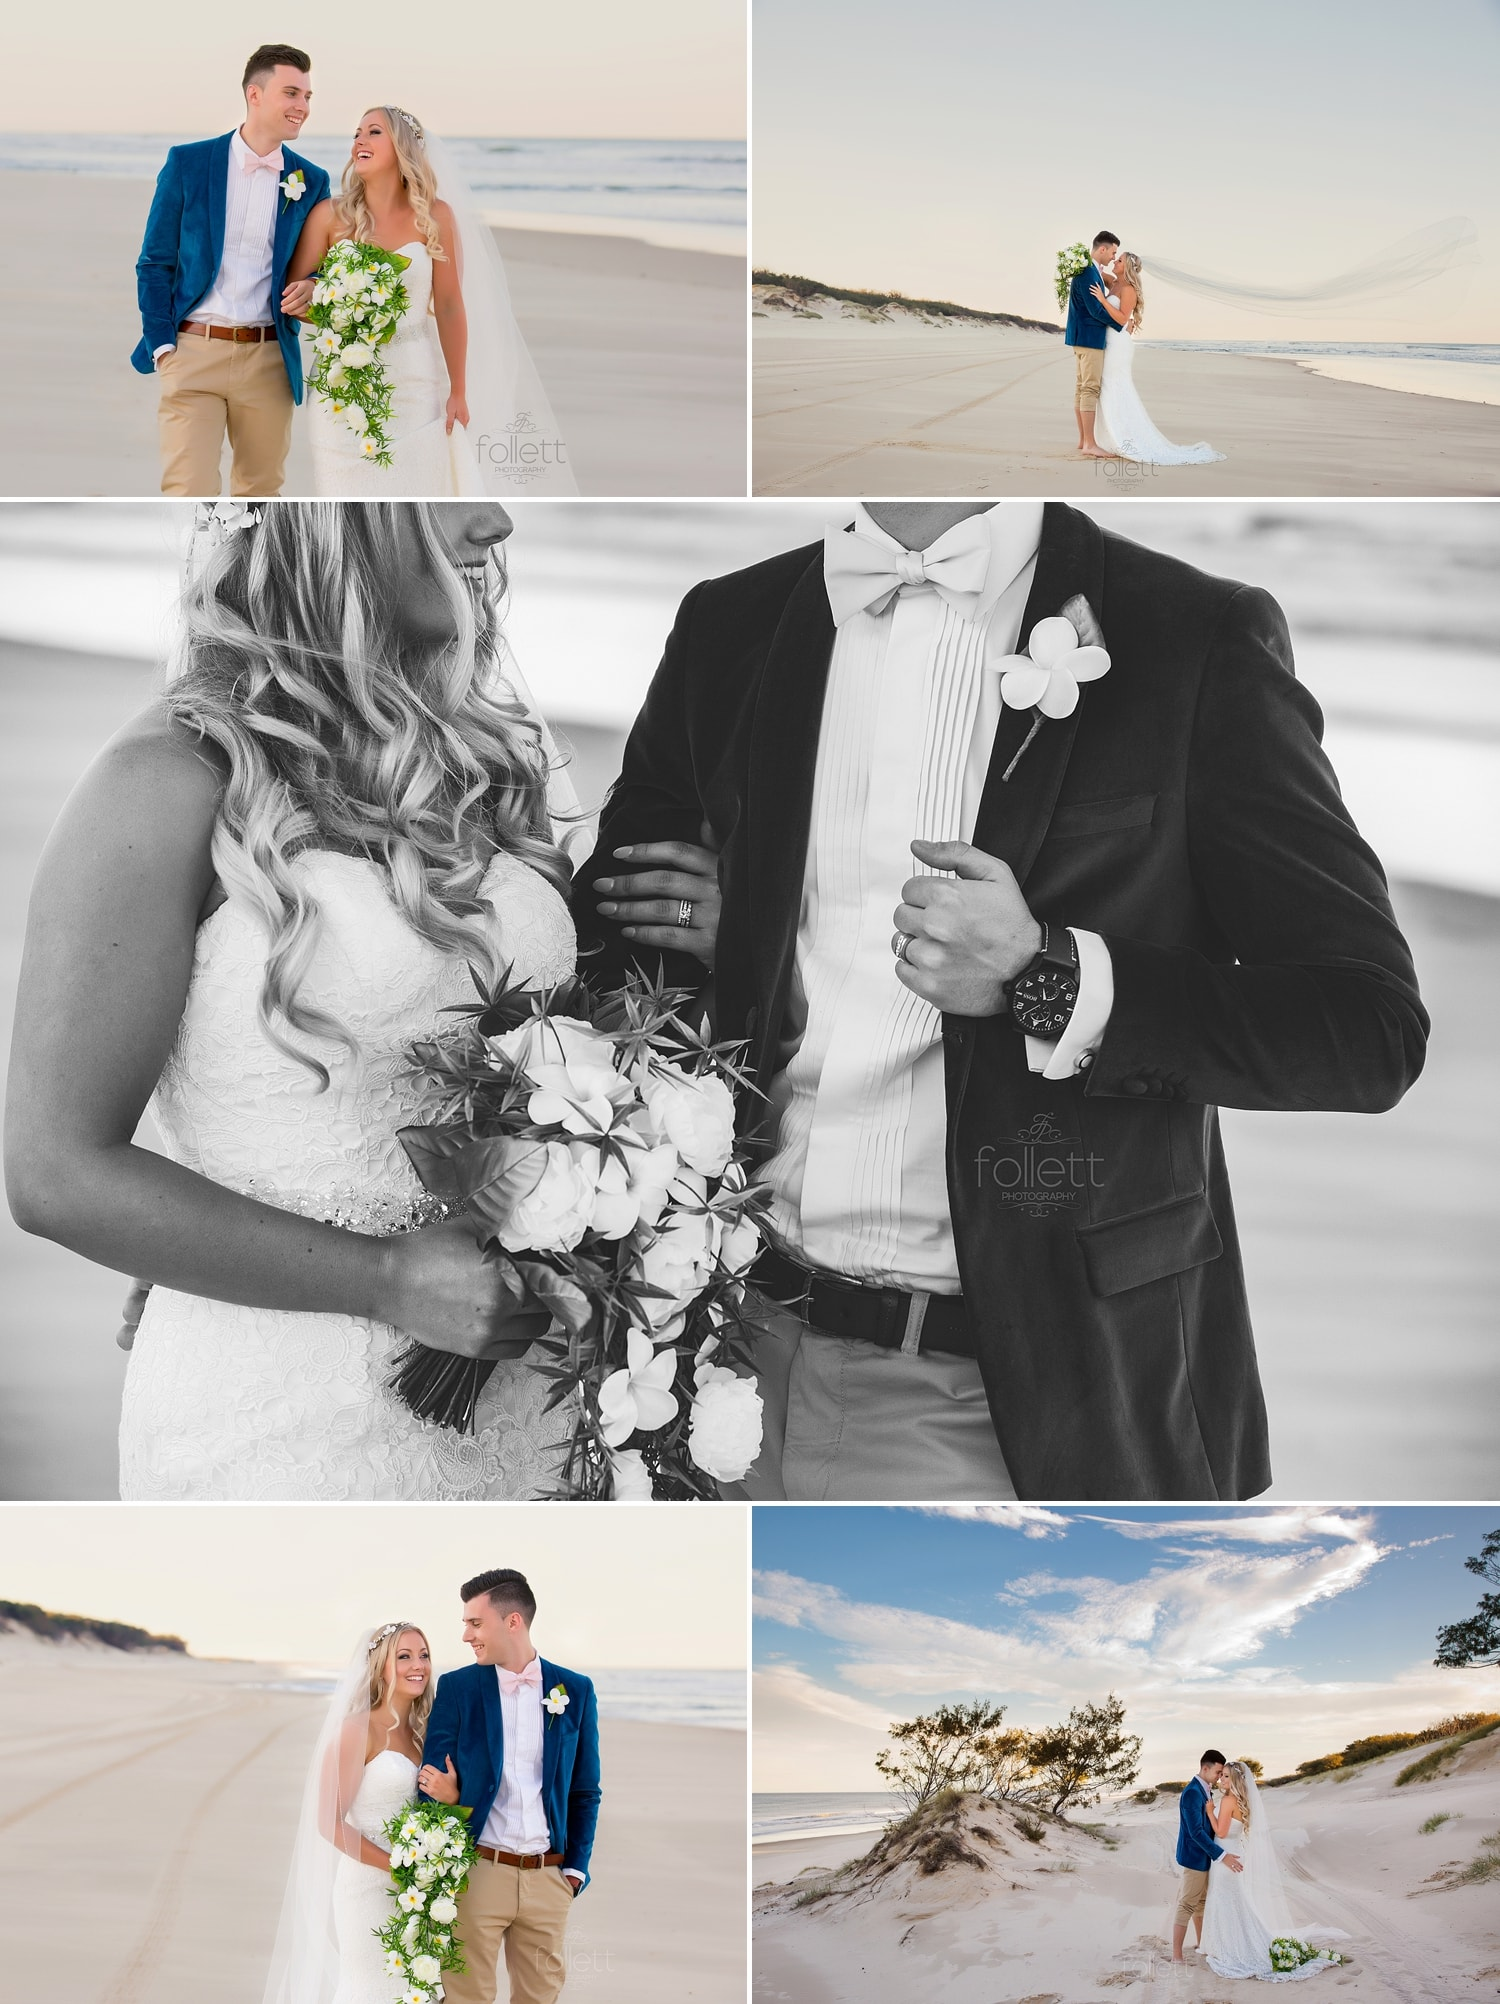 Gold Coast Beach Wedding Photography